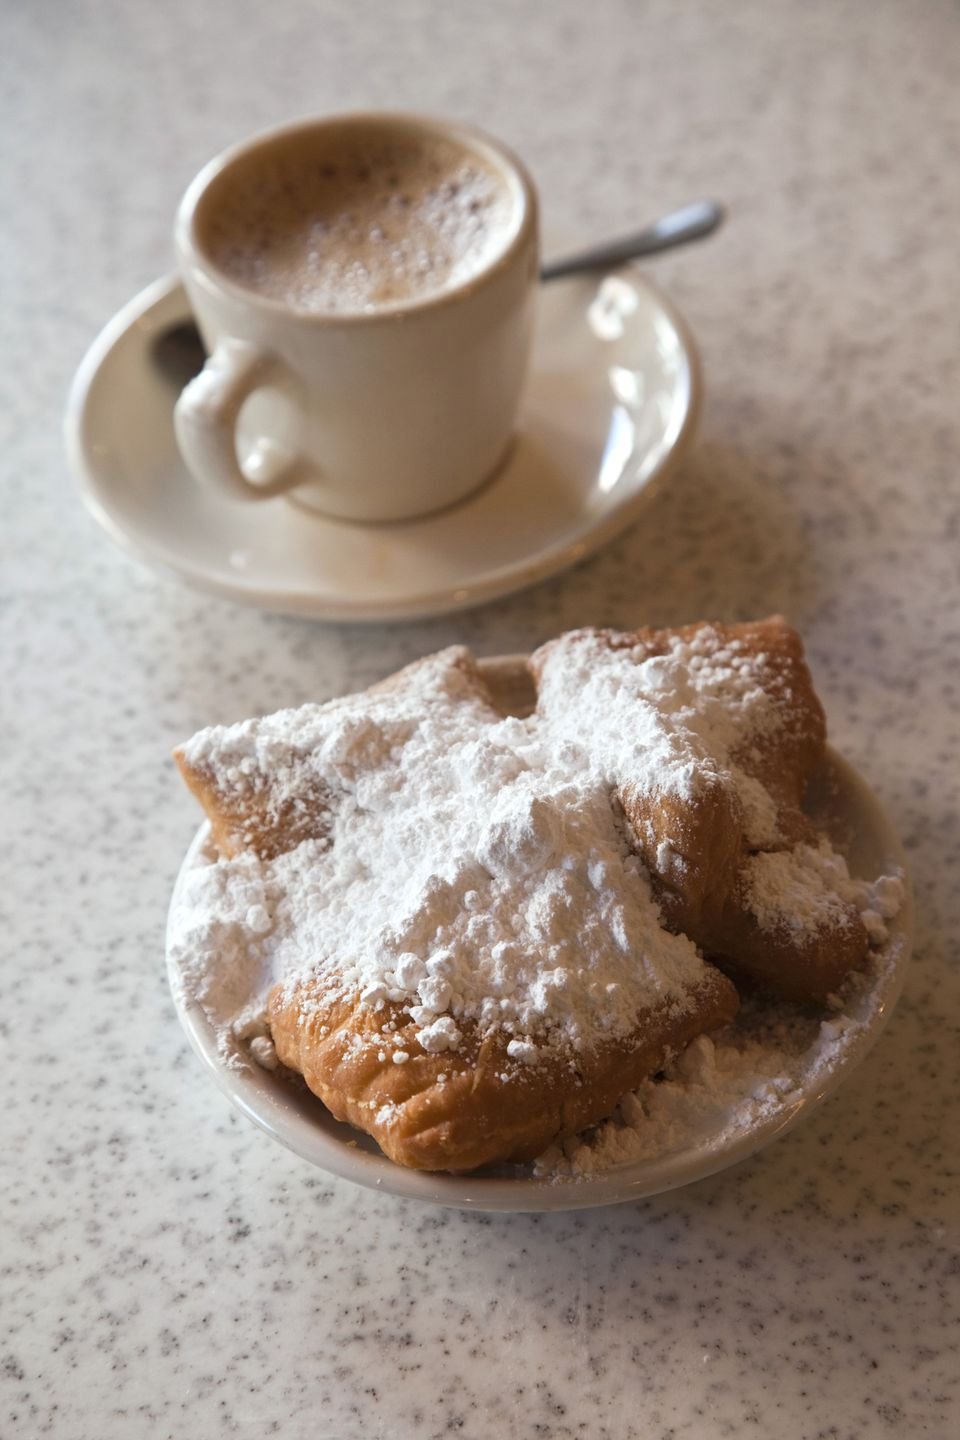 Beignets and cafe au lait at Cafe Du Monde, French Quarter, New Orleans, Louisiana, USA